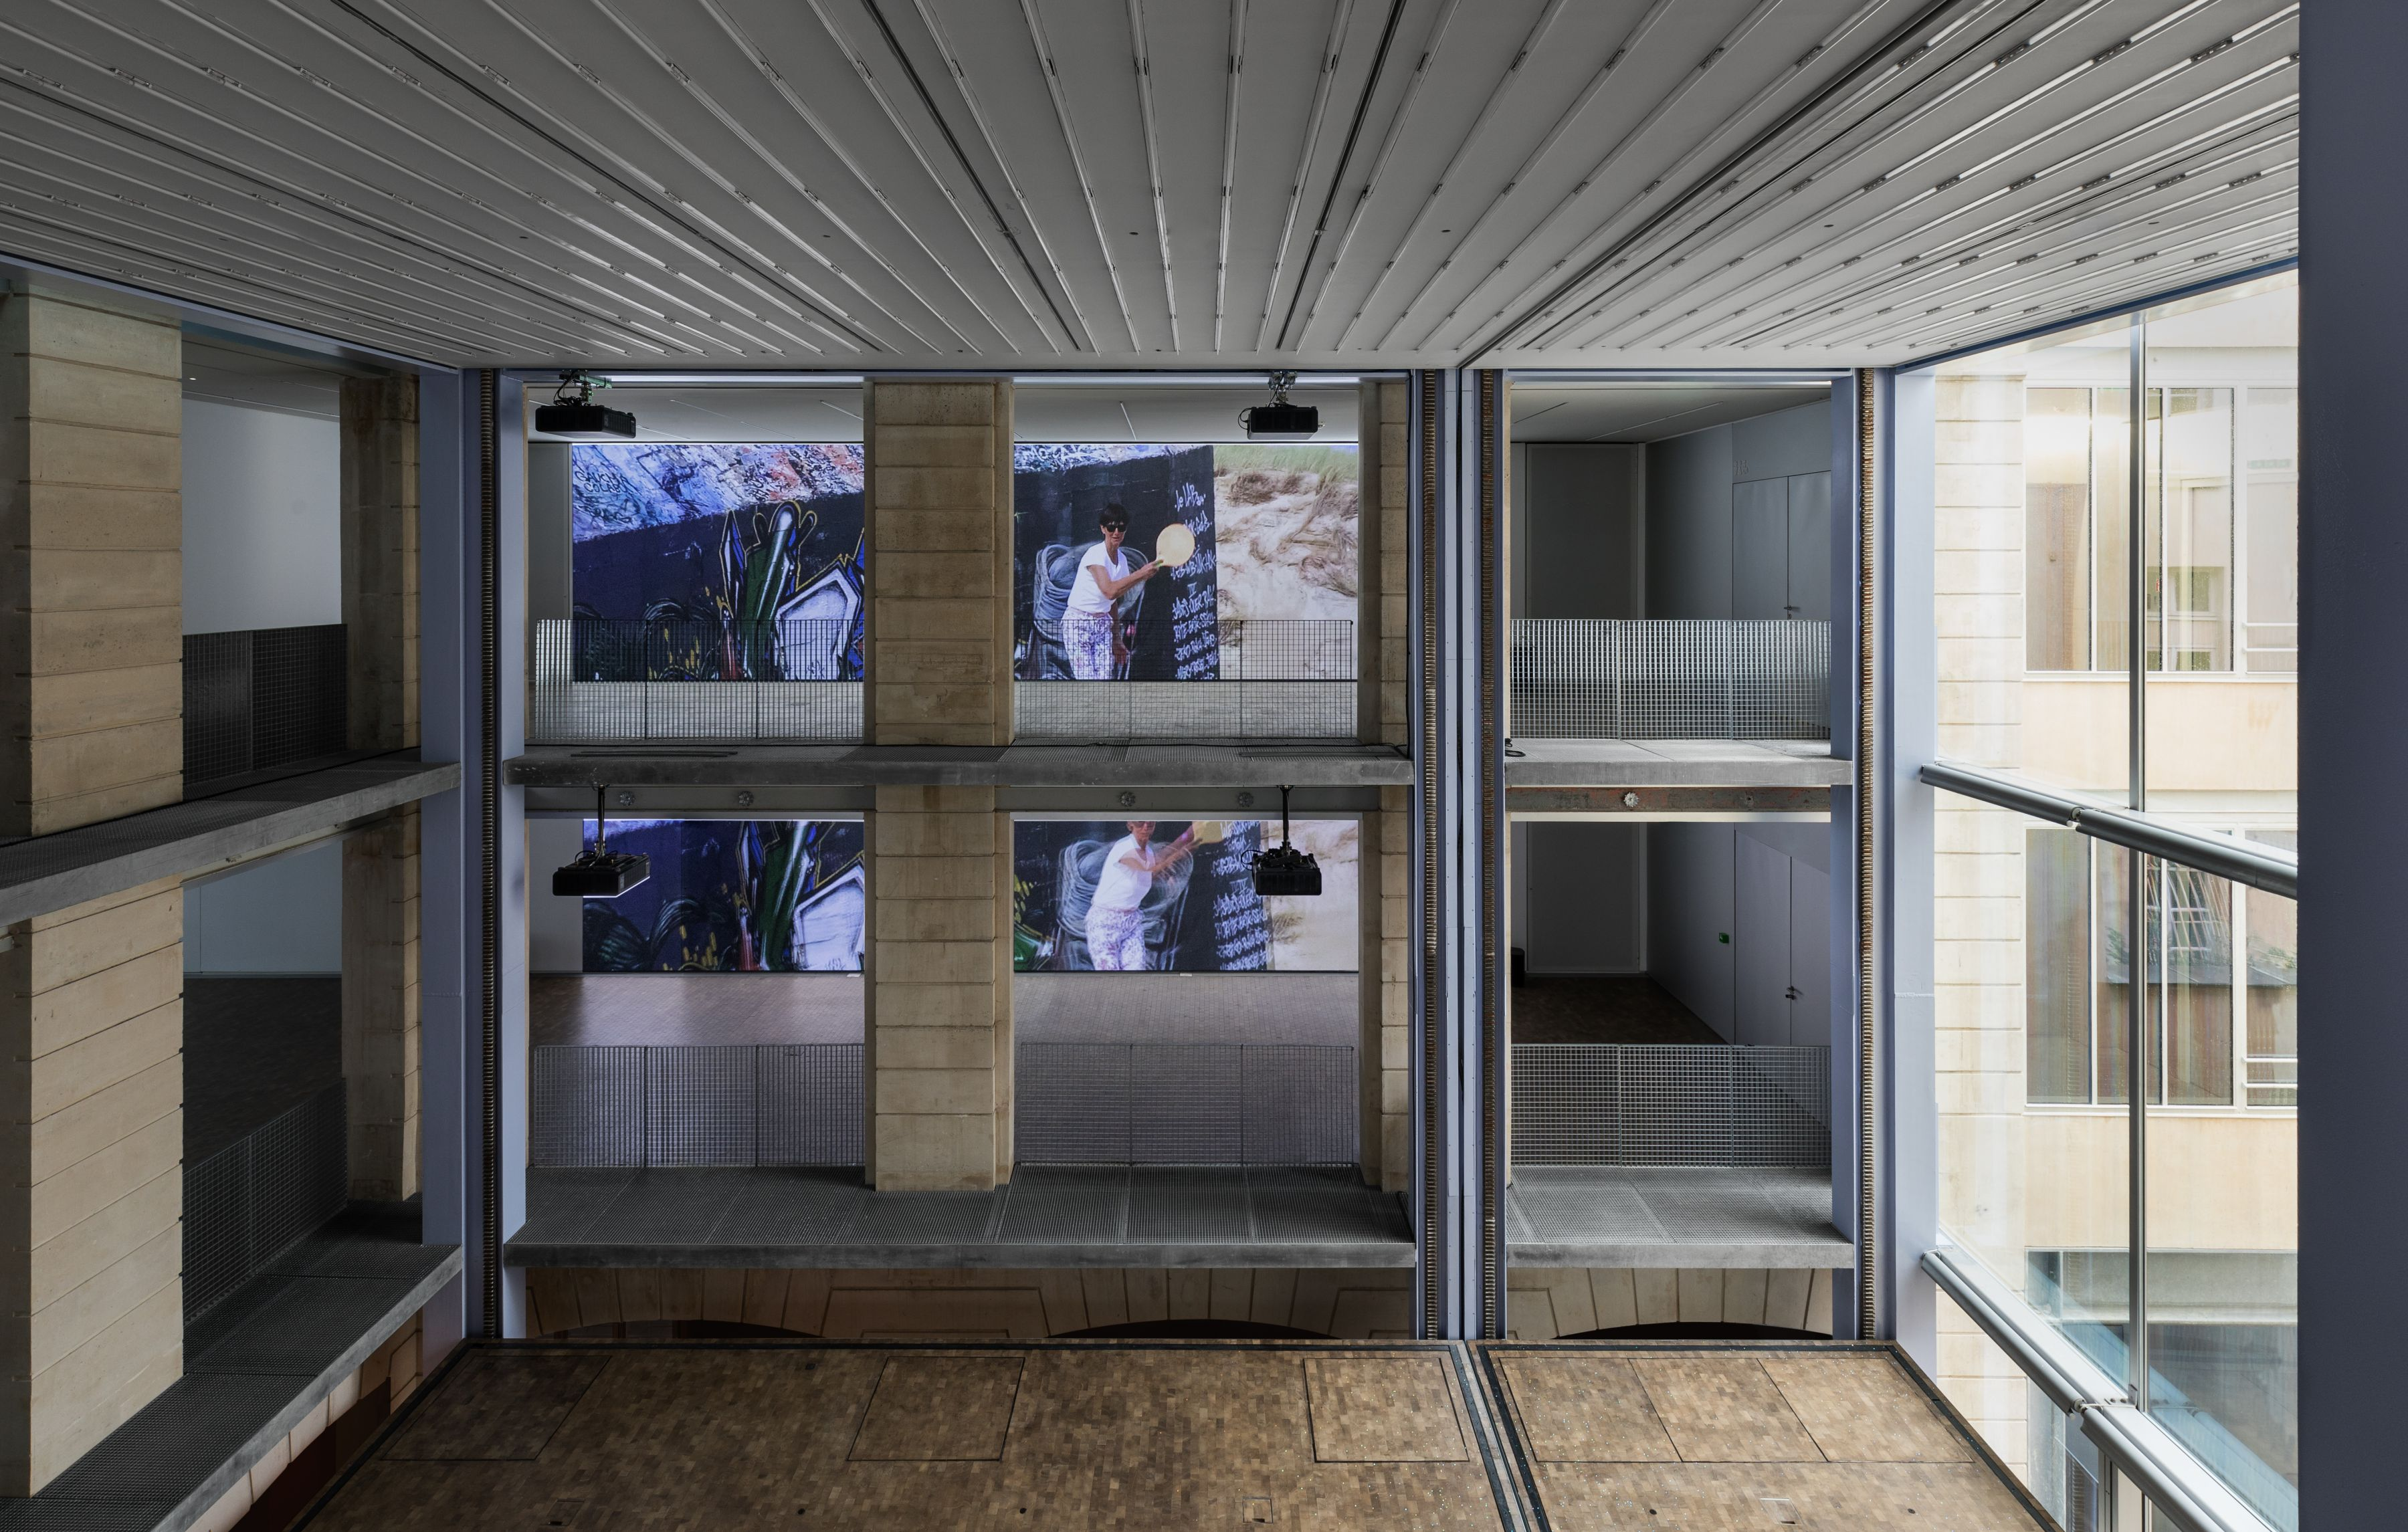 Lutz Bacher, Installation View,The Silence of the Sea, Lafayette Anticipations - Fondation d'entreprise Galeries Lafayette, 2018